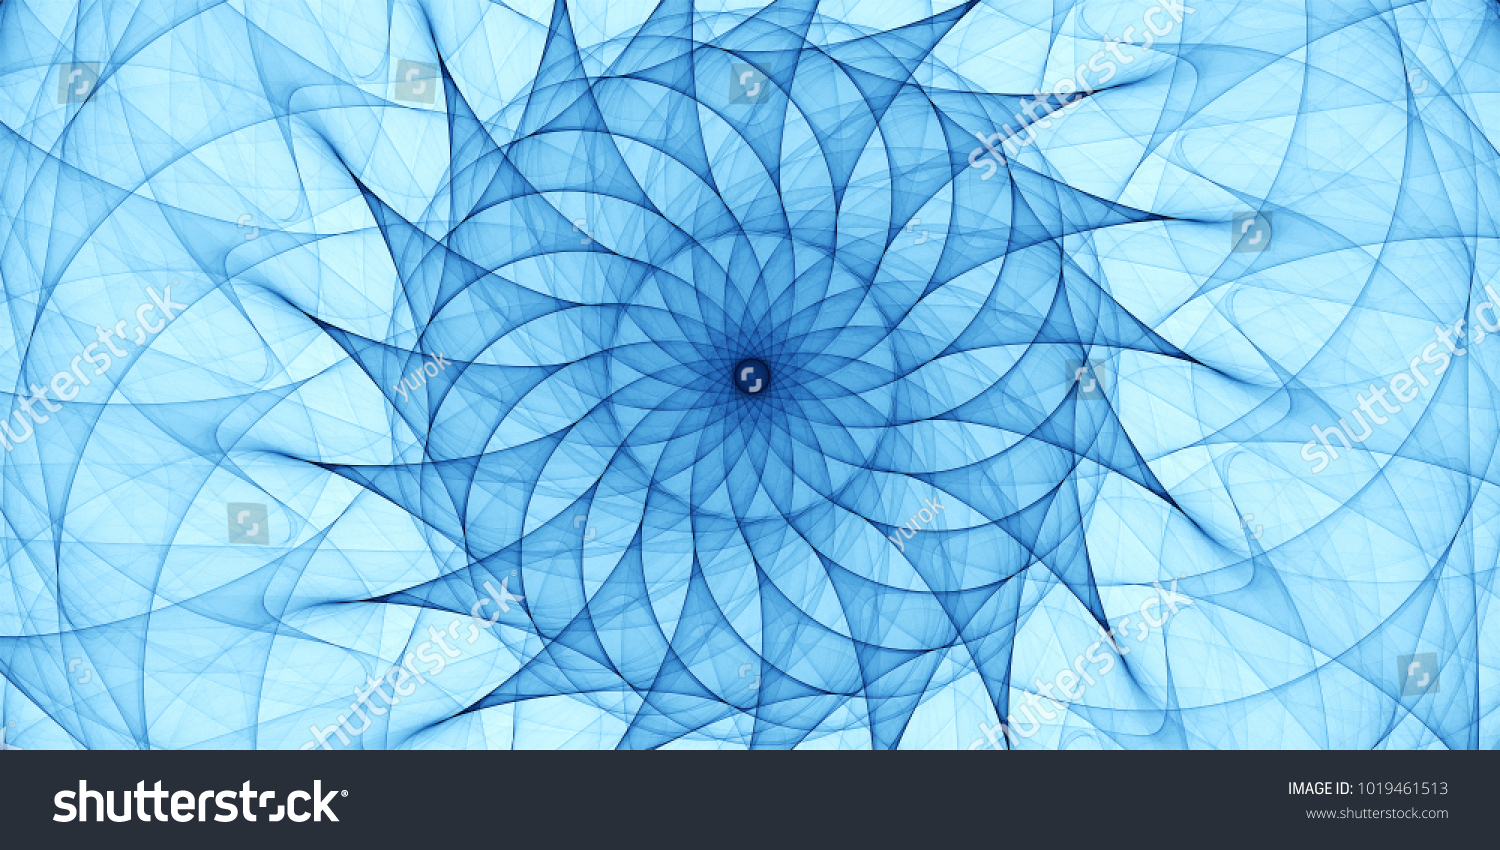 Blue Abstract Ornament Detailed Spiral Drawing Stock Illustration ...